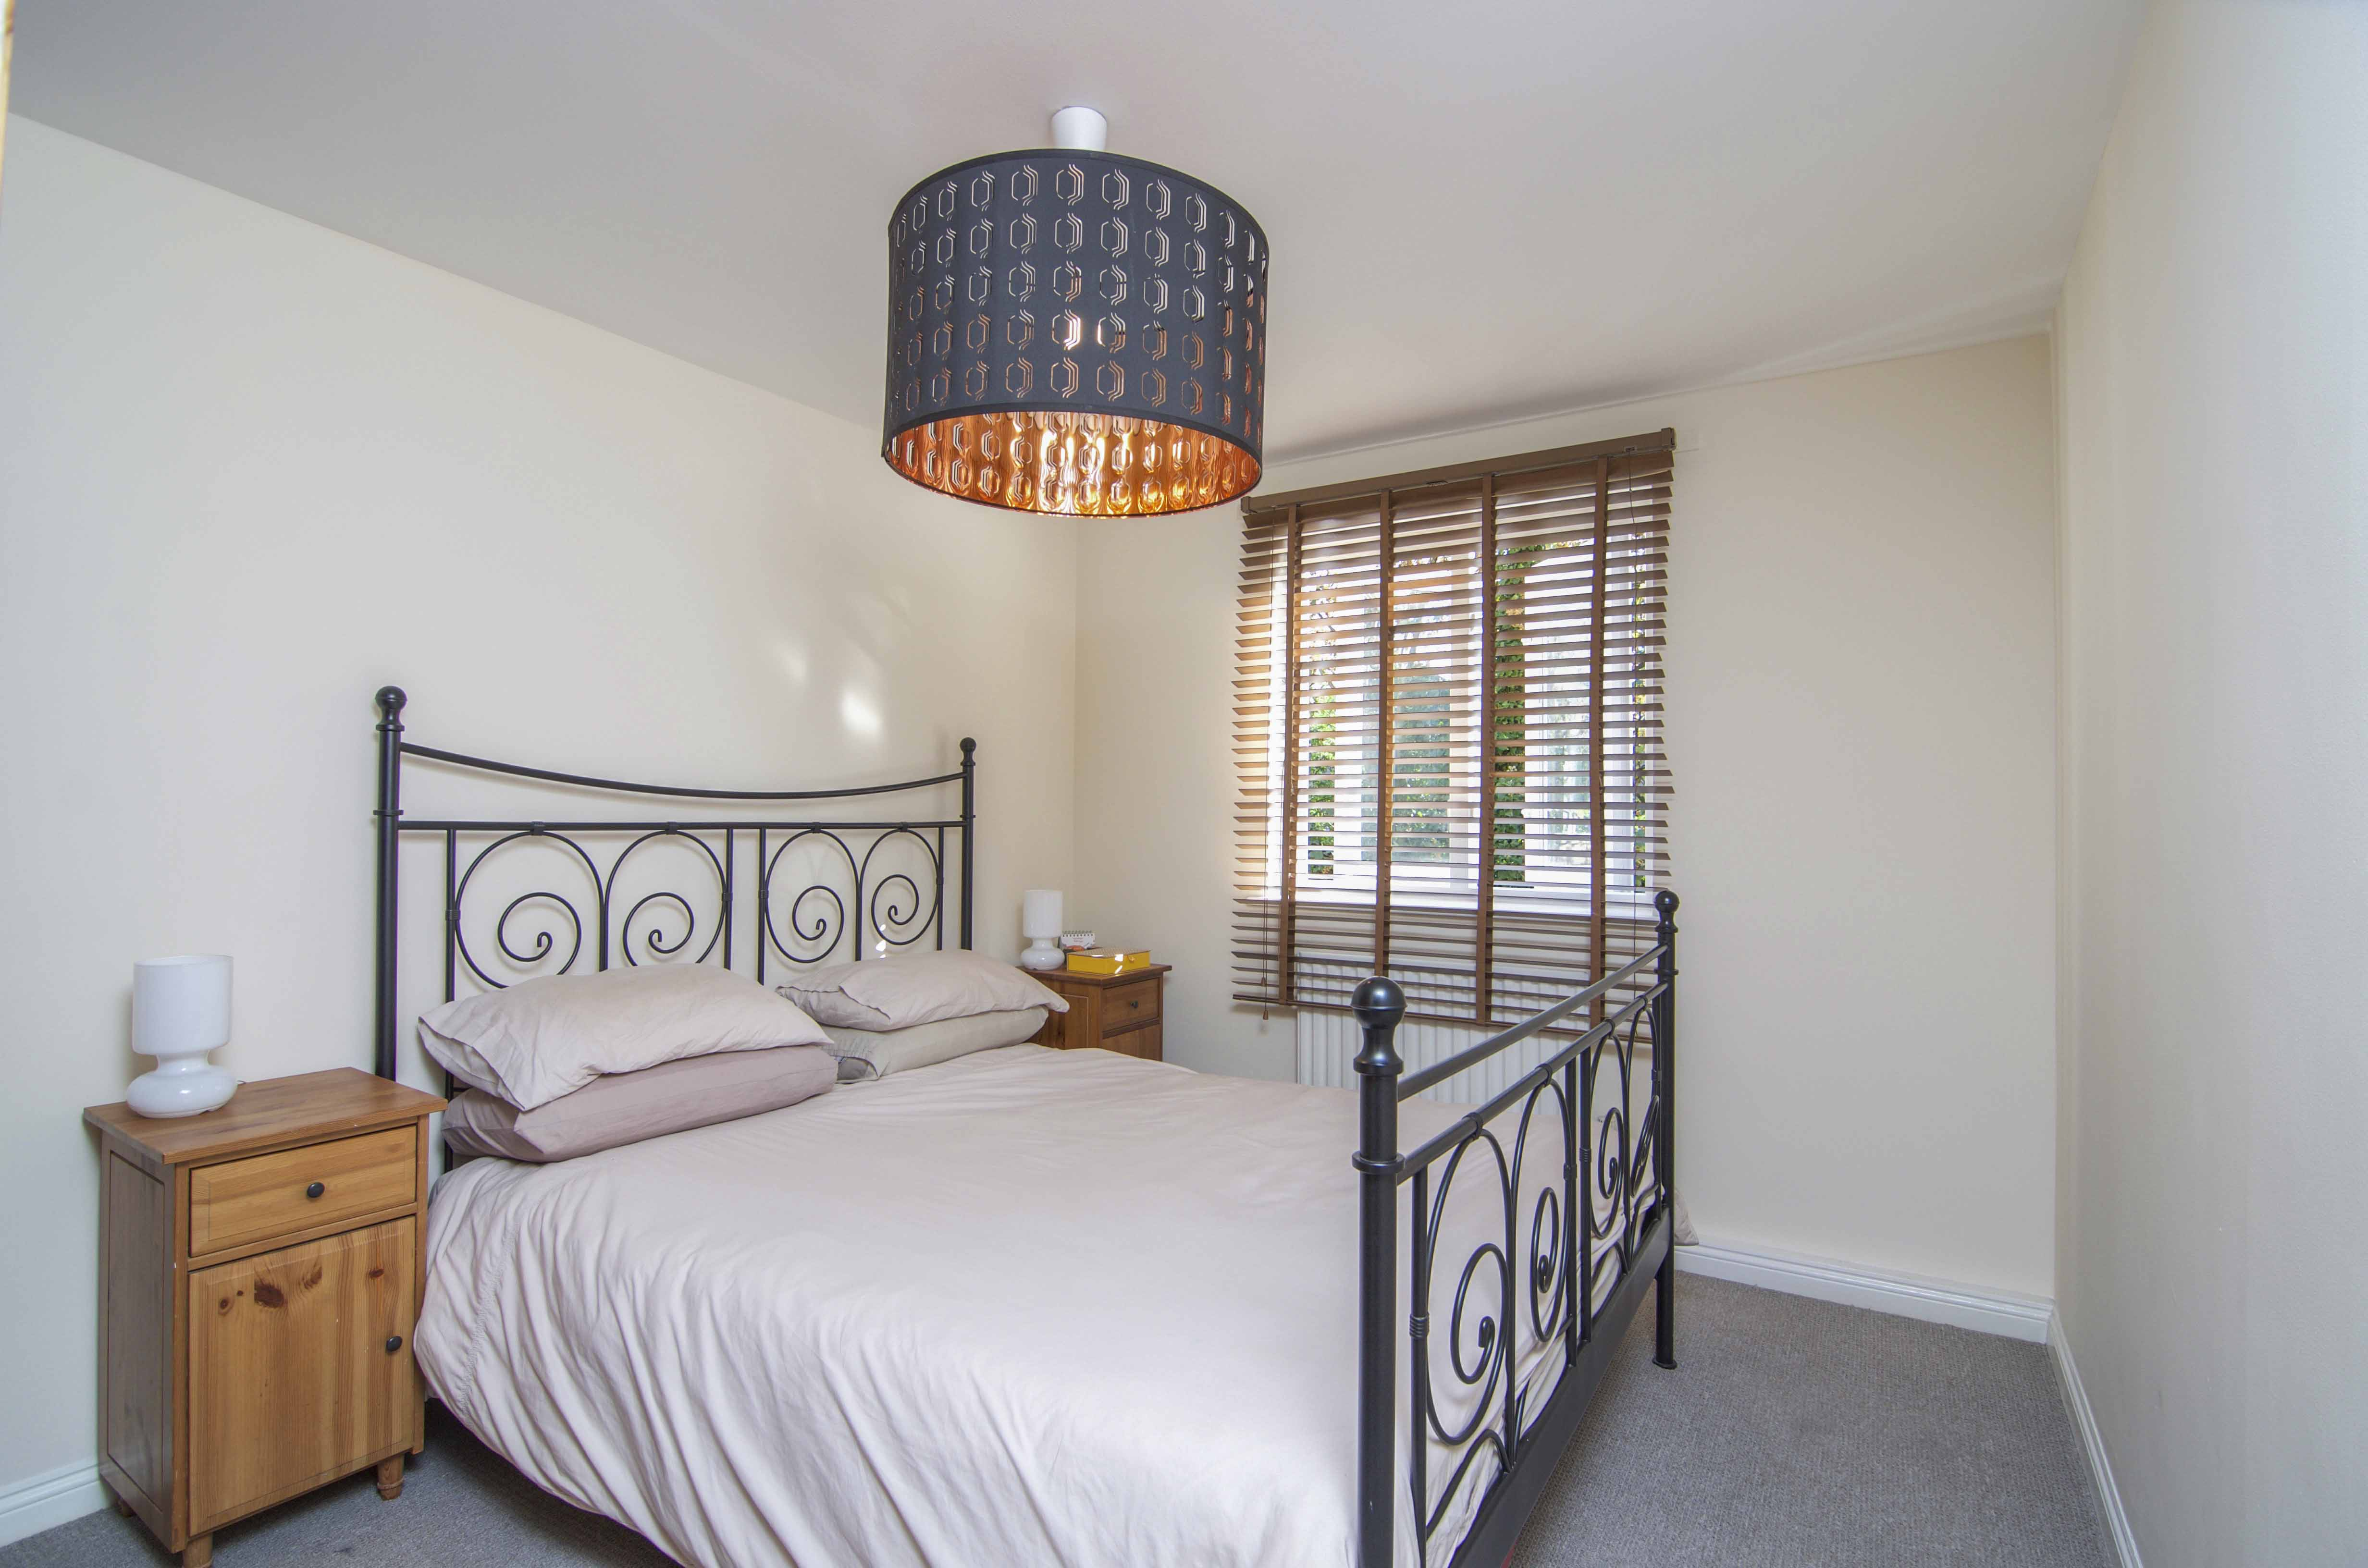 2 Bedroom Flat For Sale In Buxhall Crescent E9 London